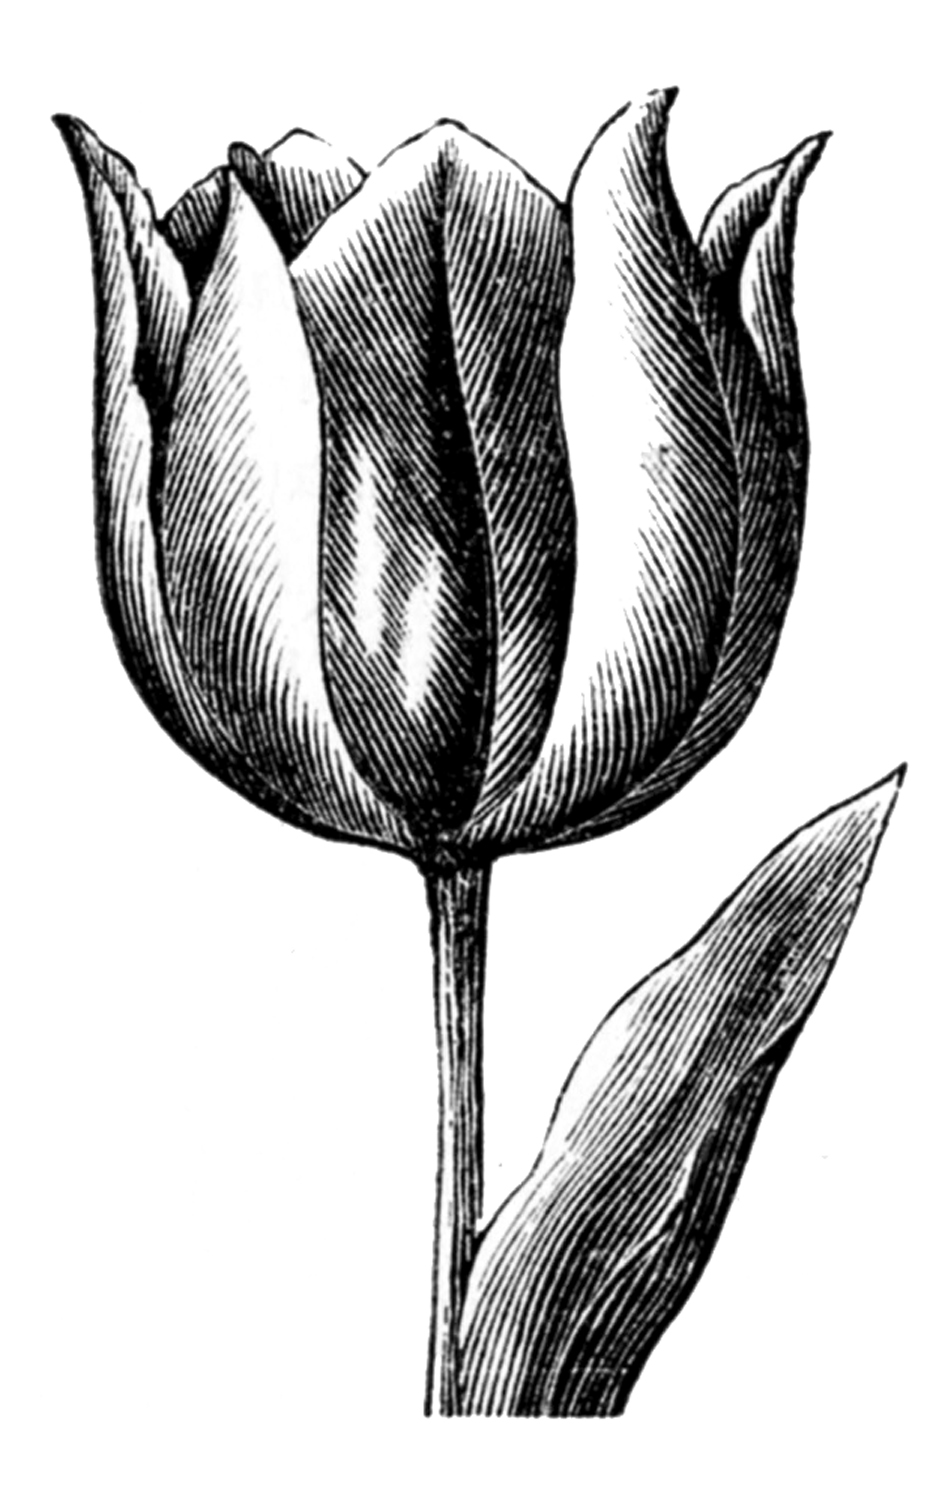 drawings of tulips vintage clip art spring tulips the graphics fairy drawings of tulips 1 1